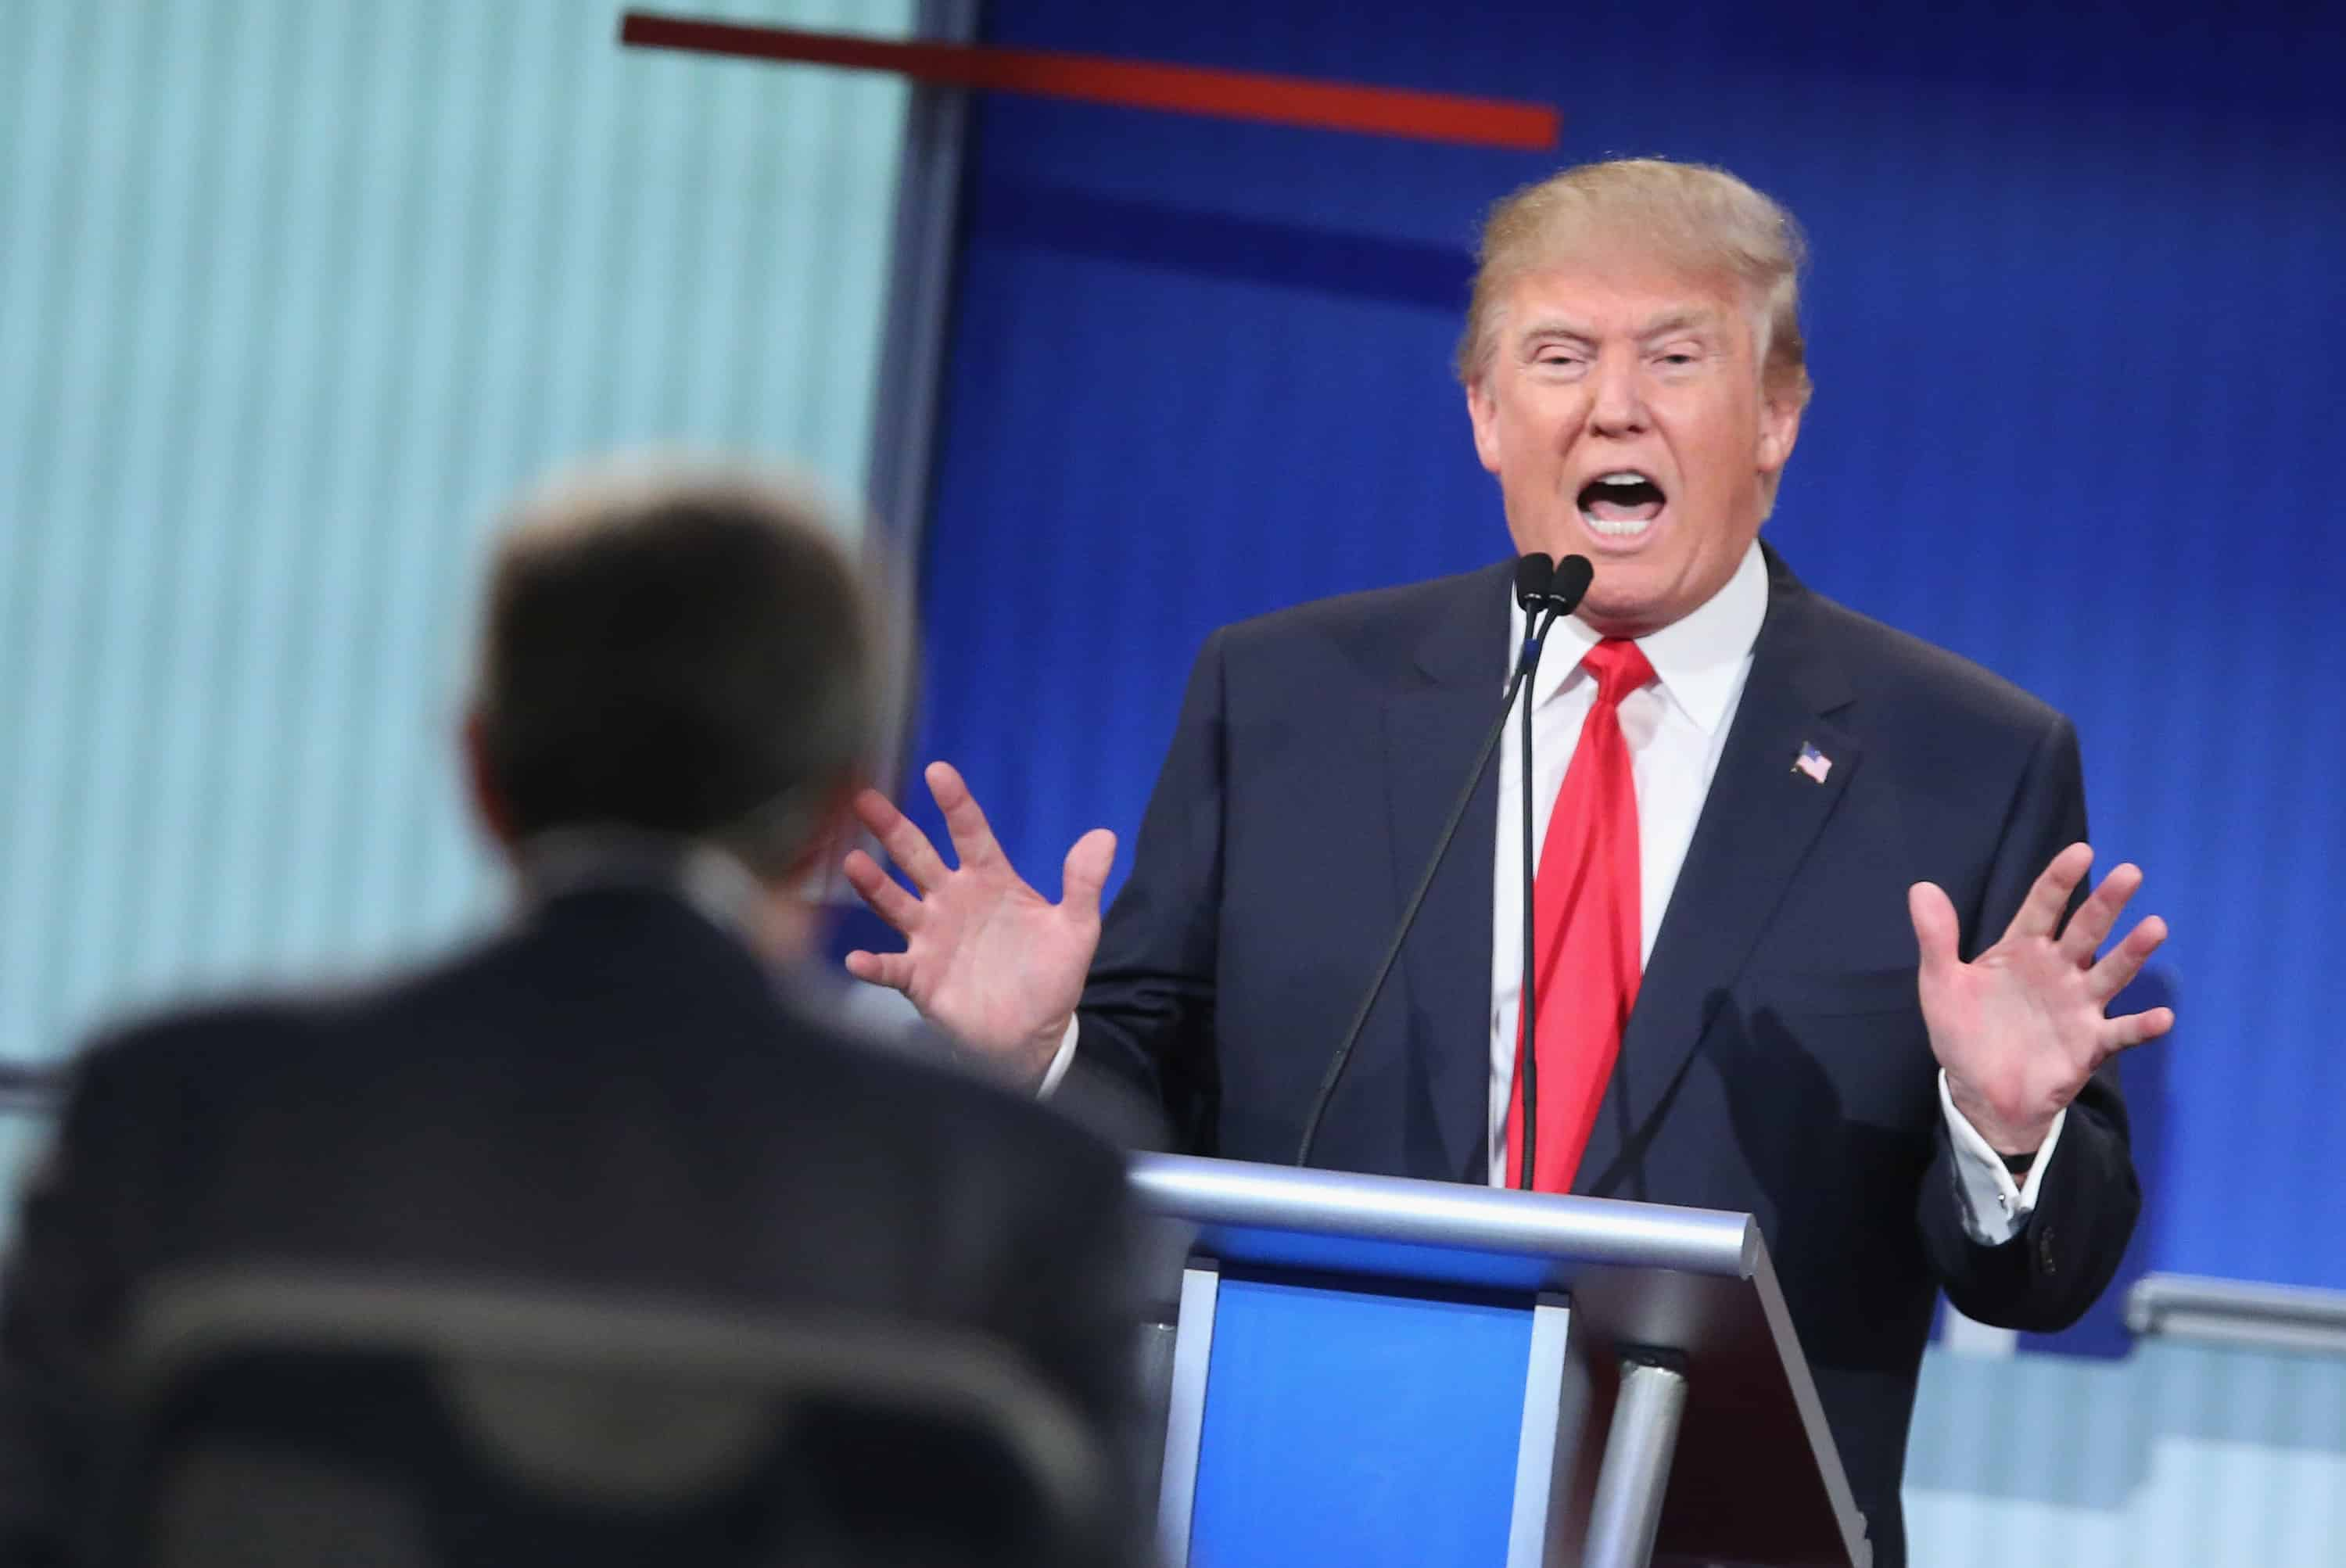 Republican presidential candidate Donald Trump fields a question during the first Republican presidential debate hosted by Fox News and Facebook at the Quicken Loans Arena on August 6, 2015 in Cleveland, Ohio.